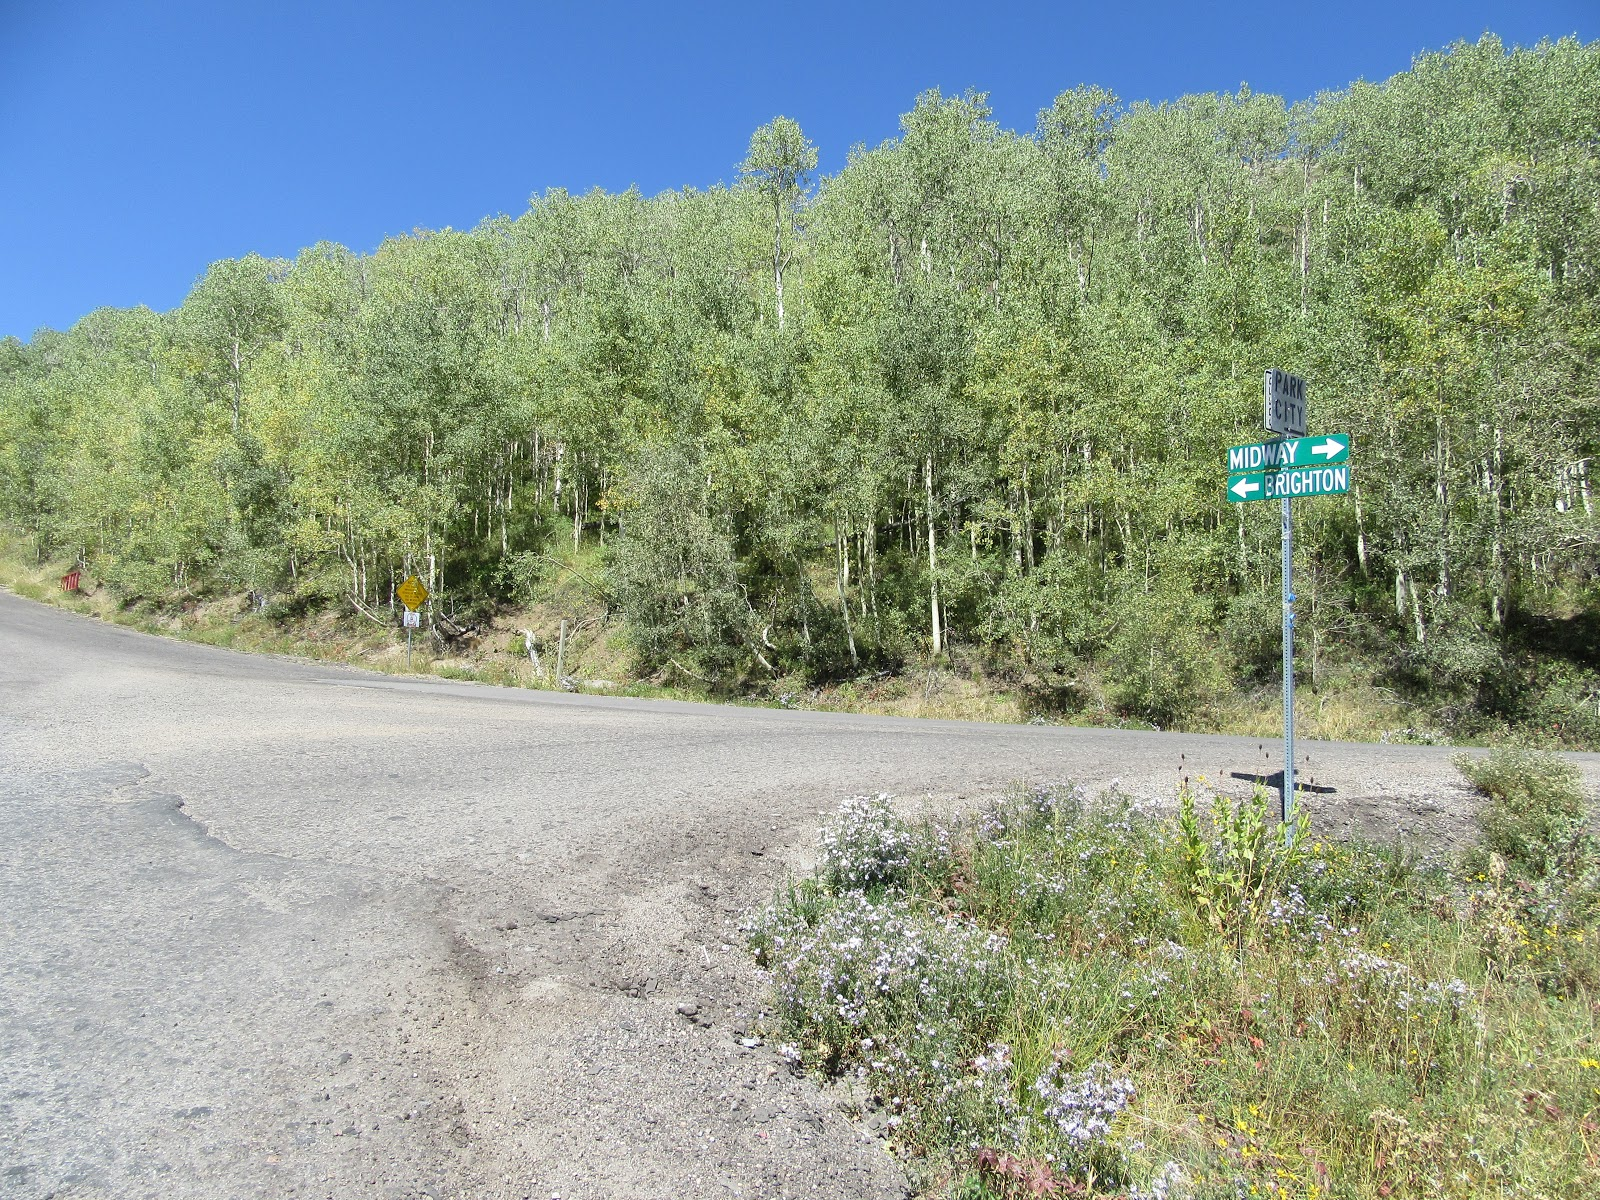 Roadway sign at turn off from Pine Canyon Road to Empire Pass.